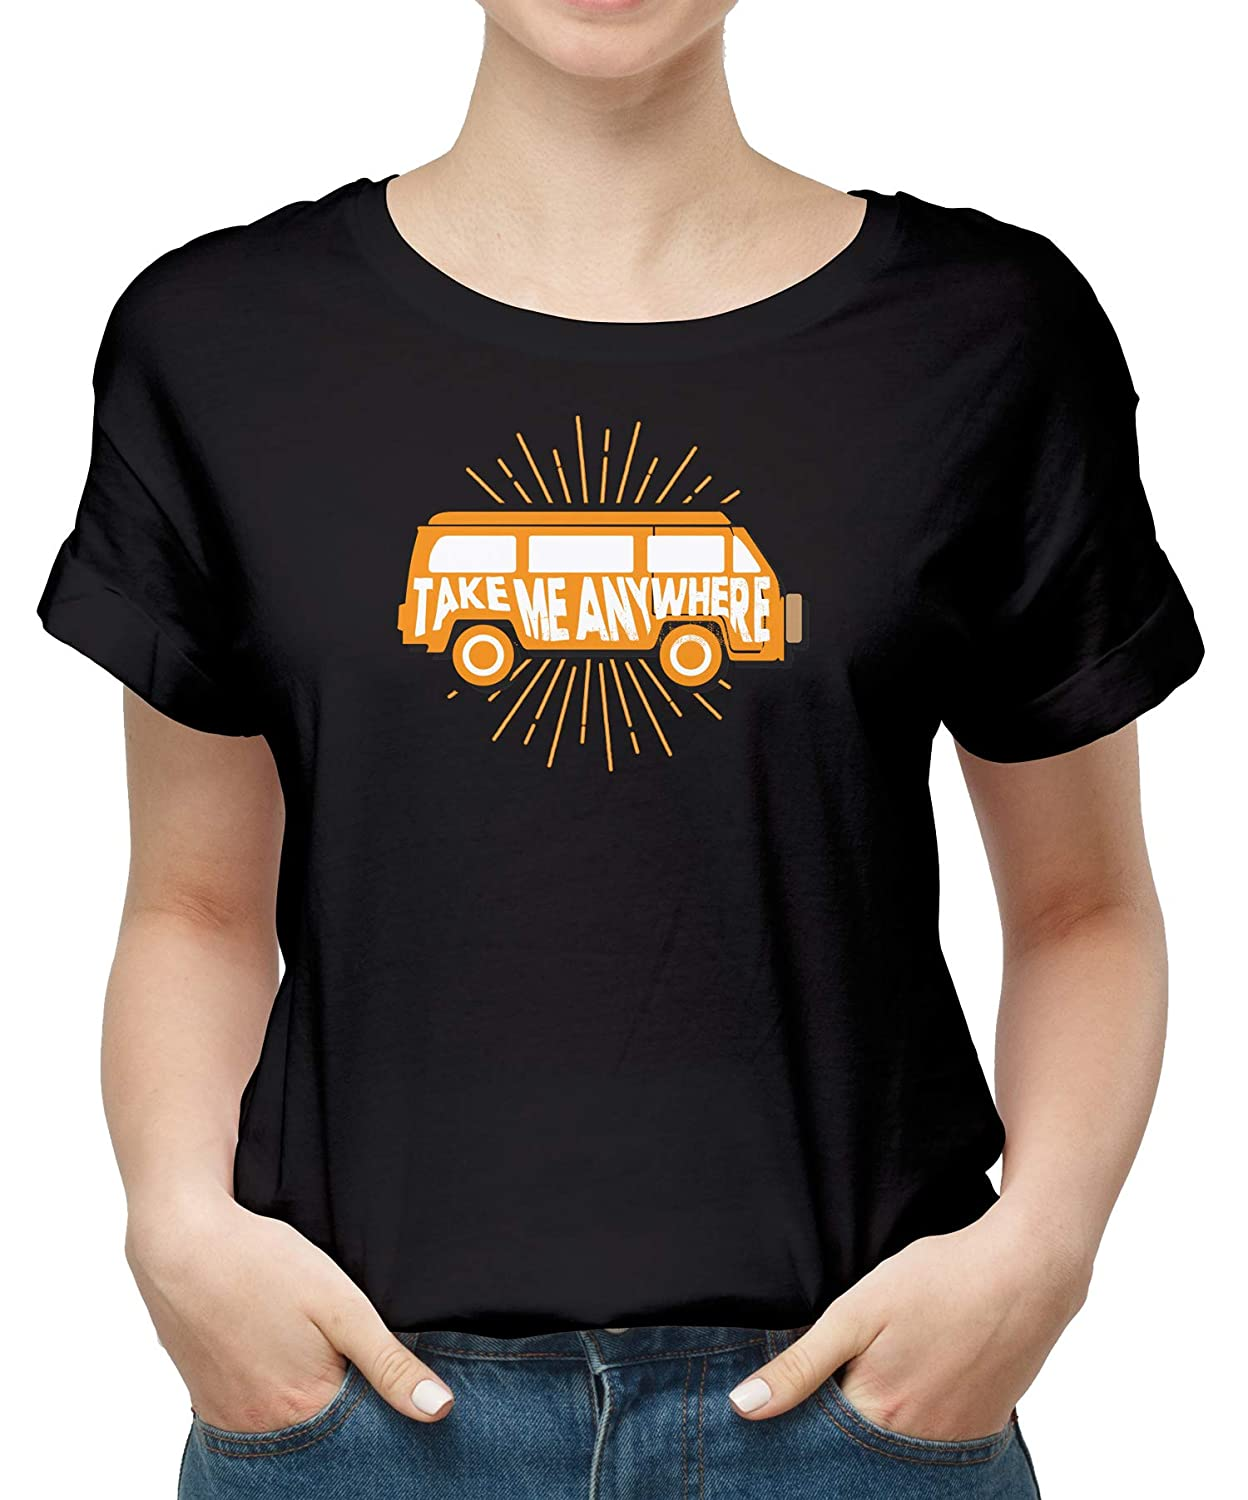 ede1fade Take me Anywhere - Mumbai Indian Music Printed T Shirt with Funny Quotes  and Unique Slogans for That Funky Look - Online Store from Mumbai:  Amazon.in: ...